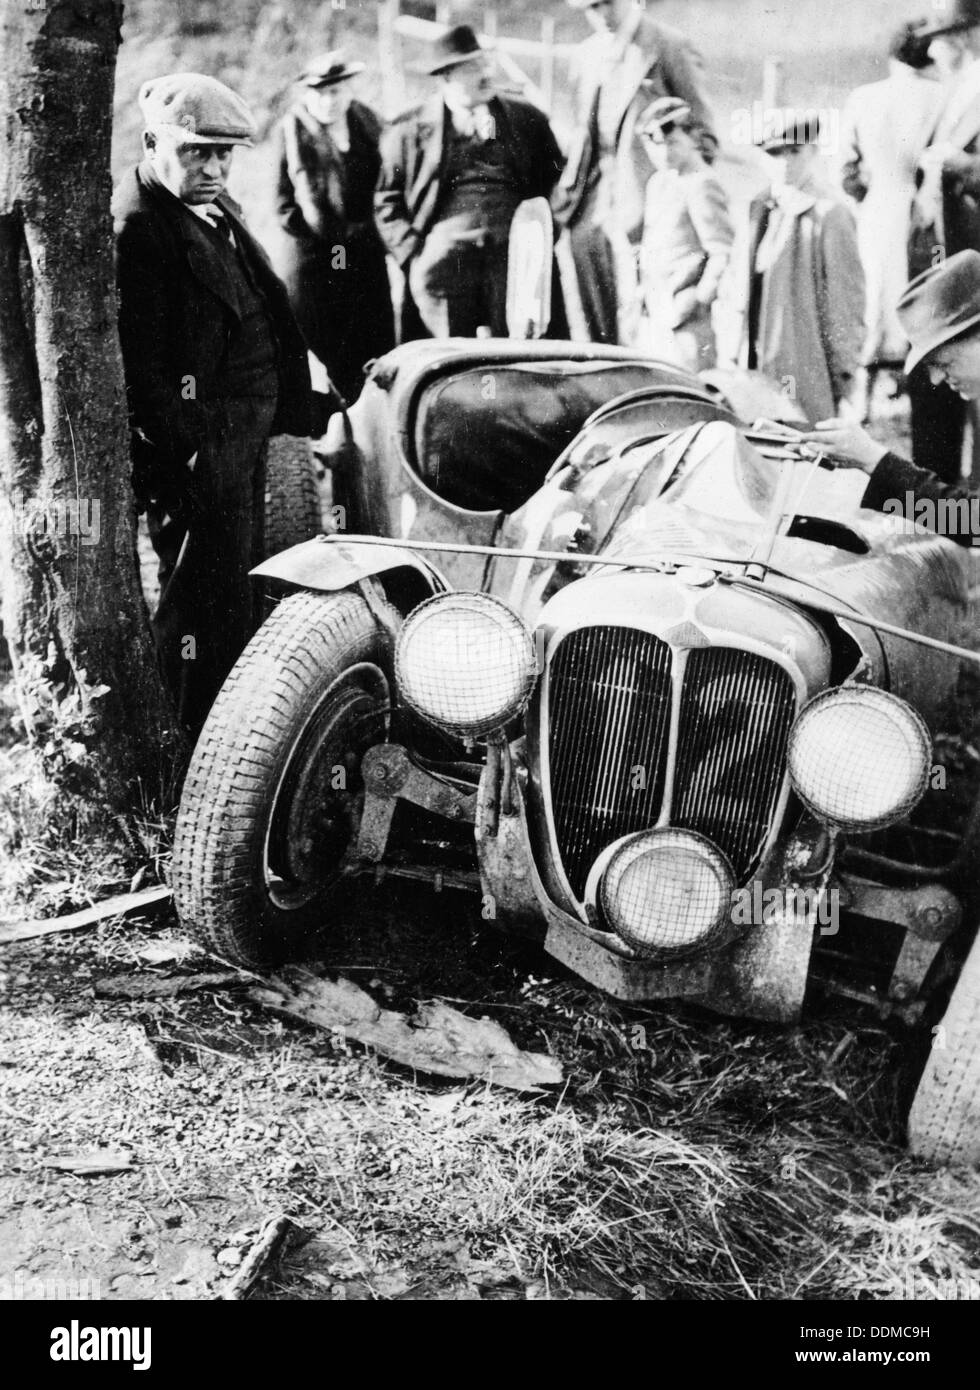 crash of the le mans 24 hours winner at spa belgium 1938 stock photo royalty free image. Black Bedroom Furniture Sets. Home Design Ideas